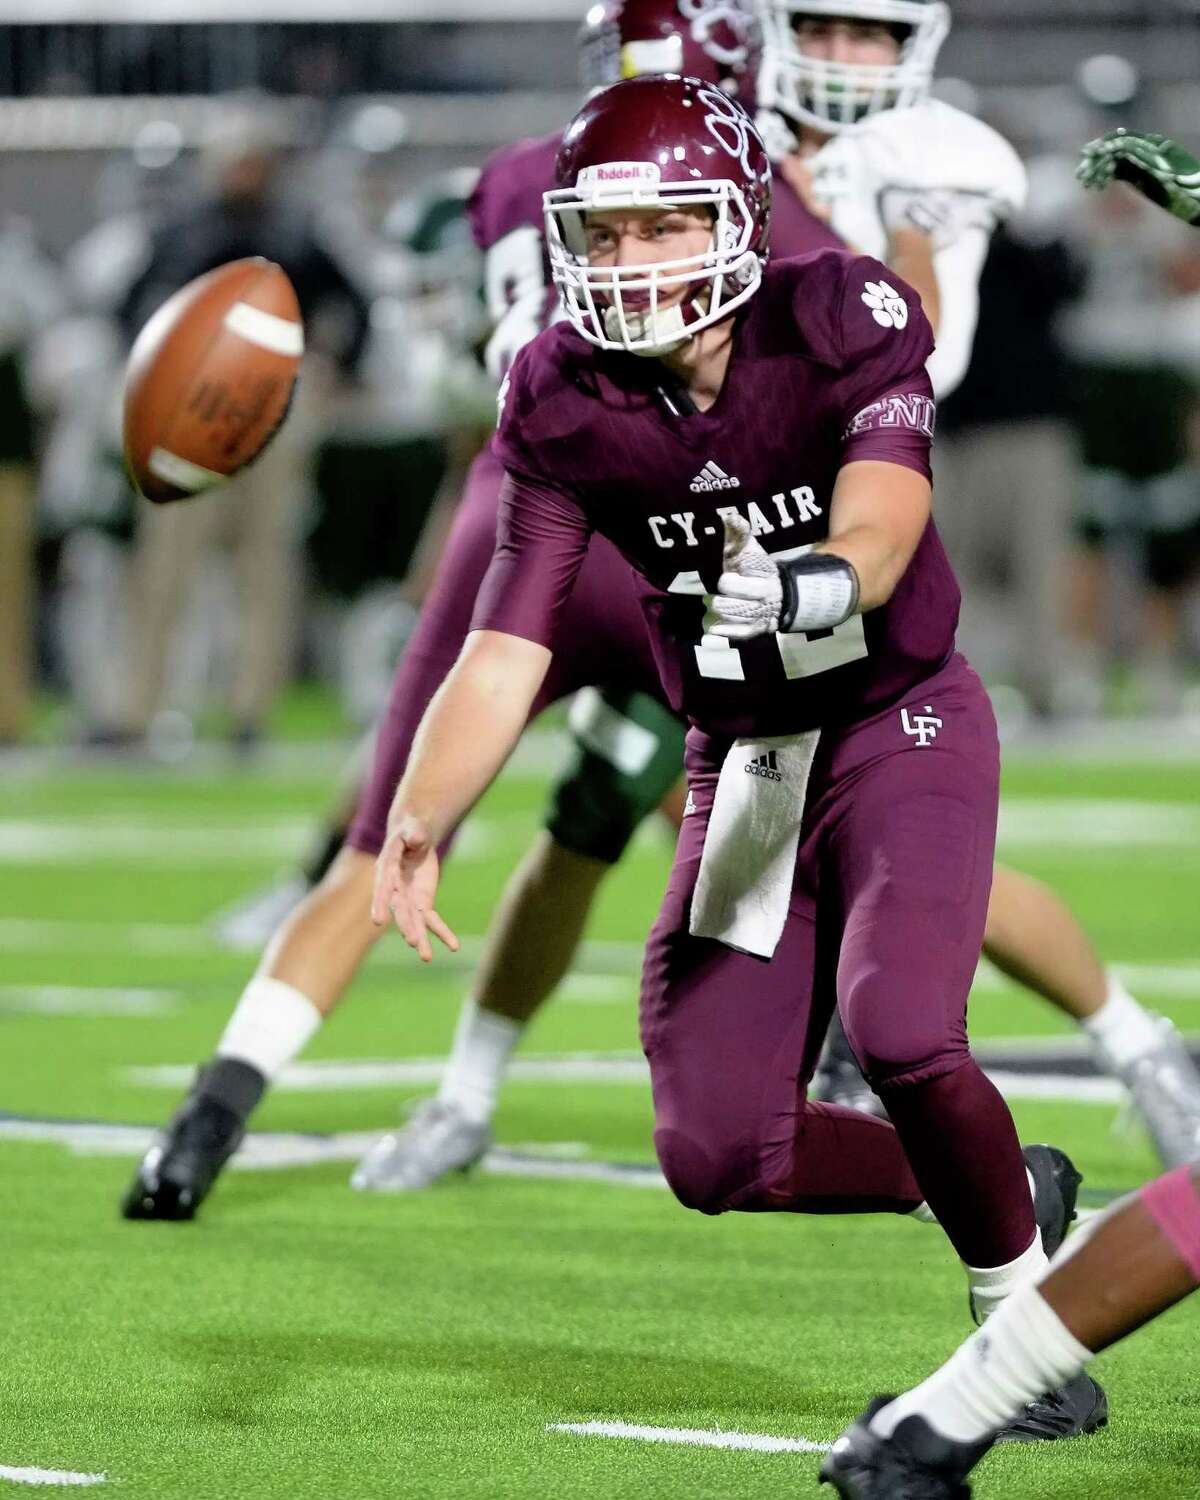 Cam Arnold (12) of Cy-Fair pitches a ball in the fourth quarter of a 6A-III area playoff football game between the Cy-Fair Bobcats and the Strake Jesuit Crusaders on November 23, 2017 at Legacy Stadium, Katy, TX.